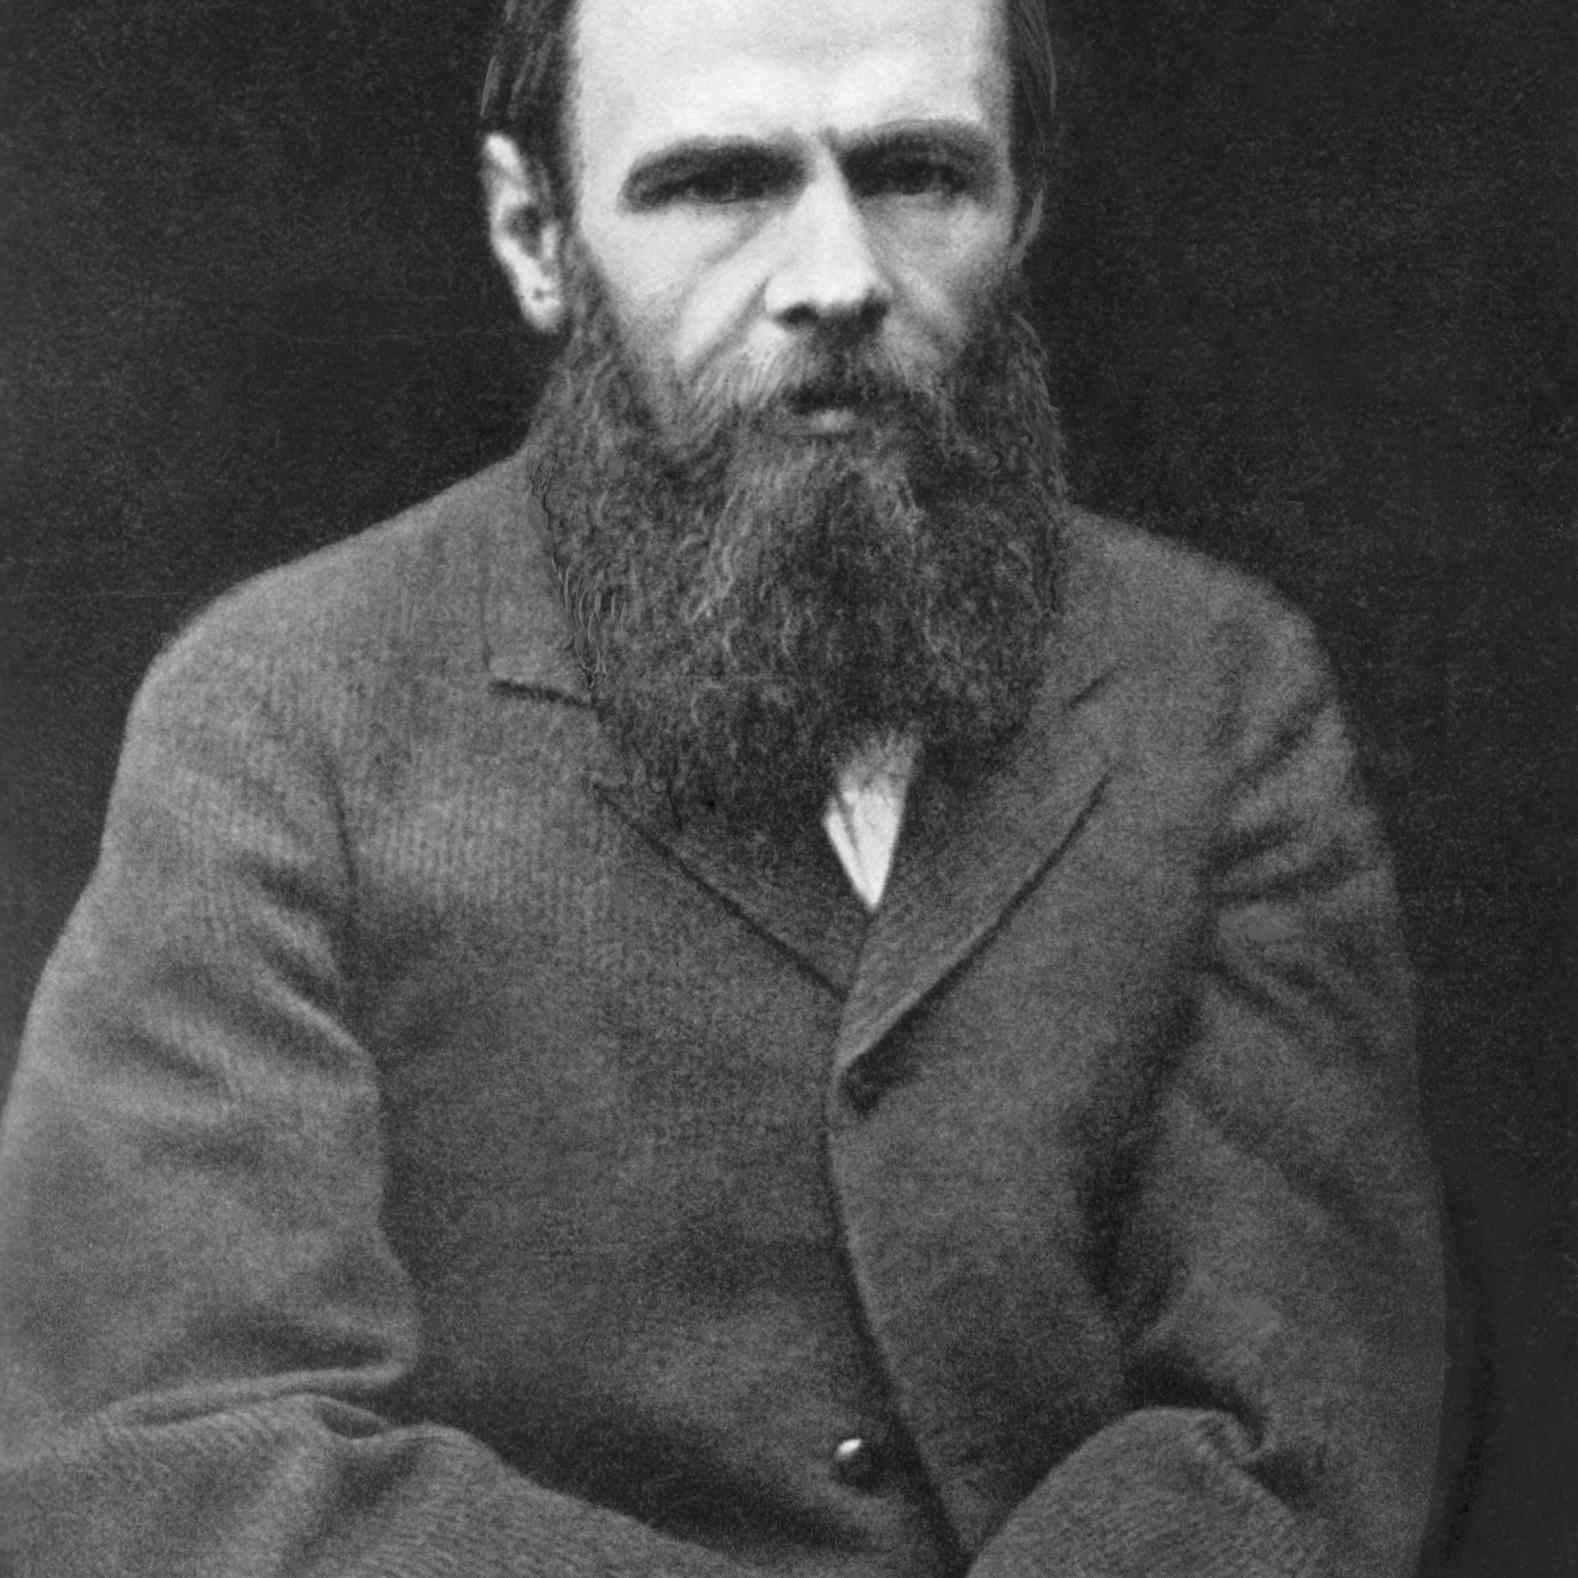 Black and white photograph of Dostoevsky, bearded and wearing a coat